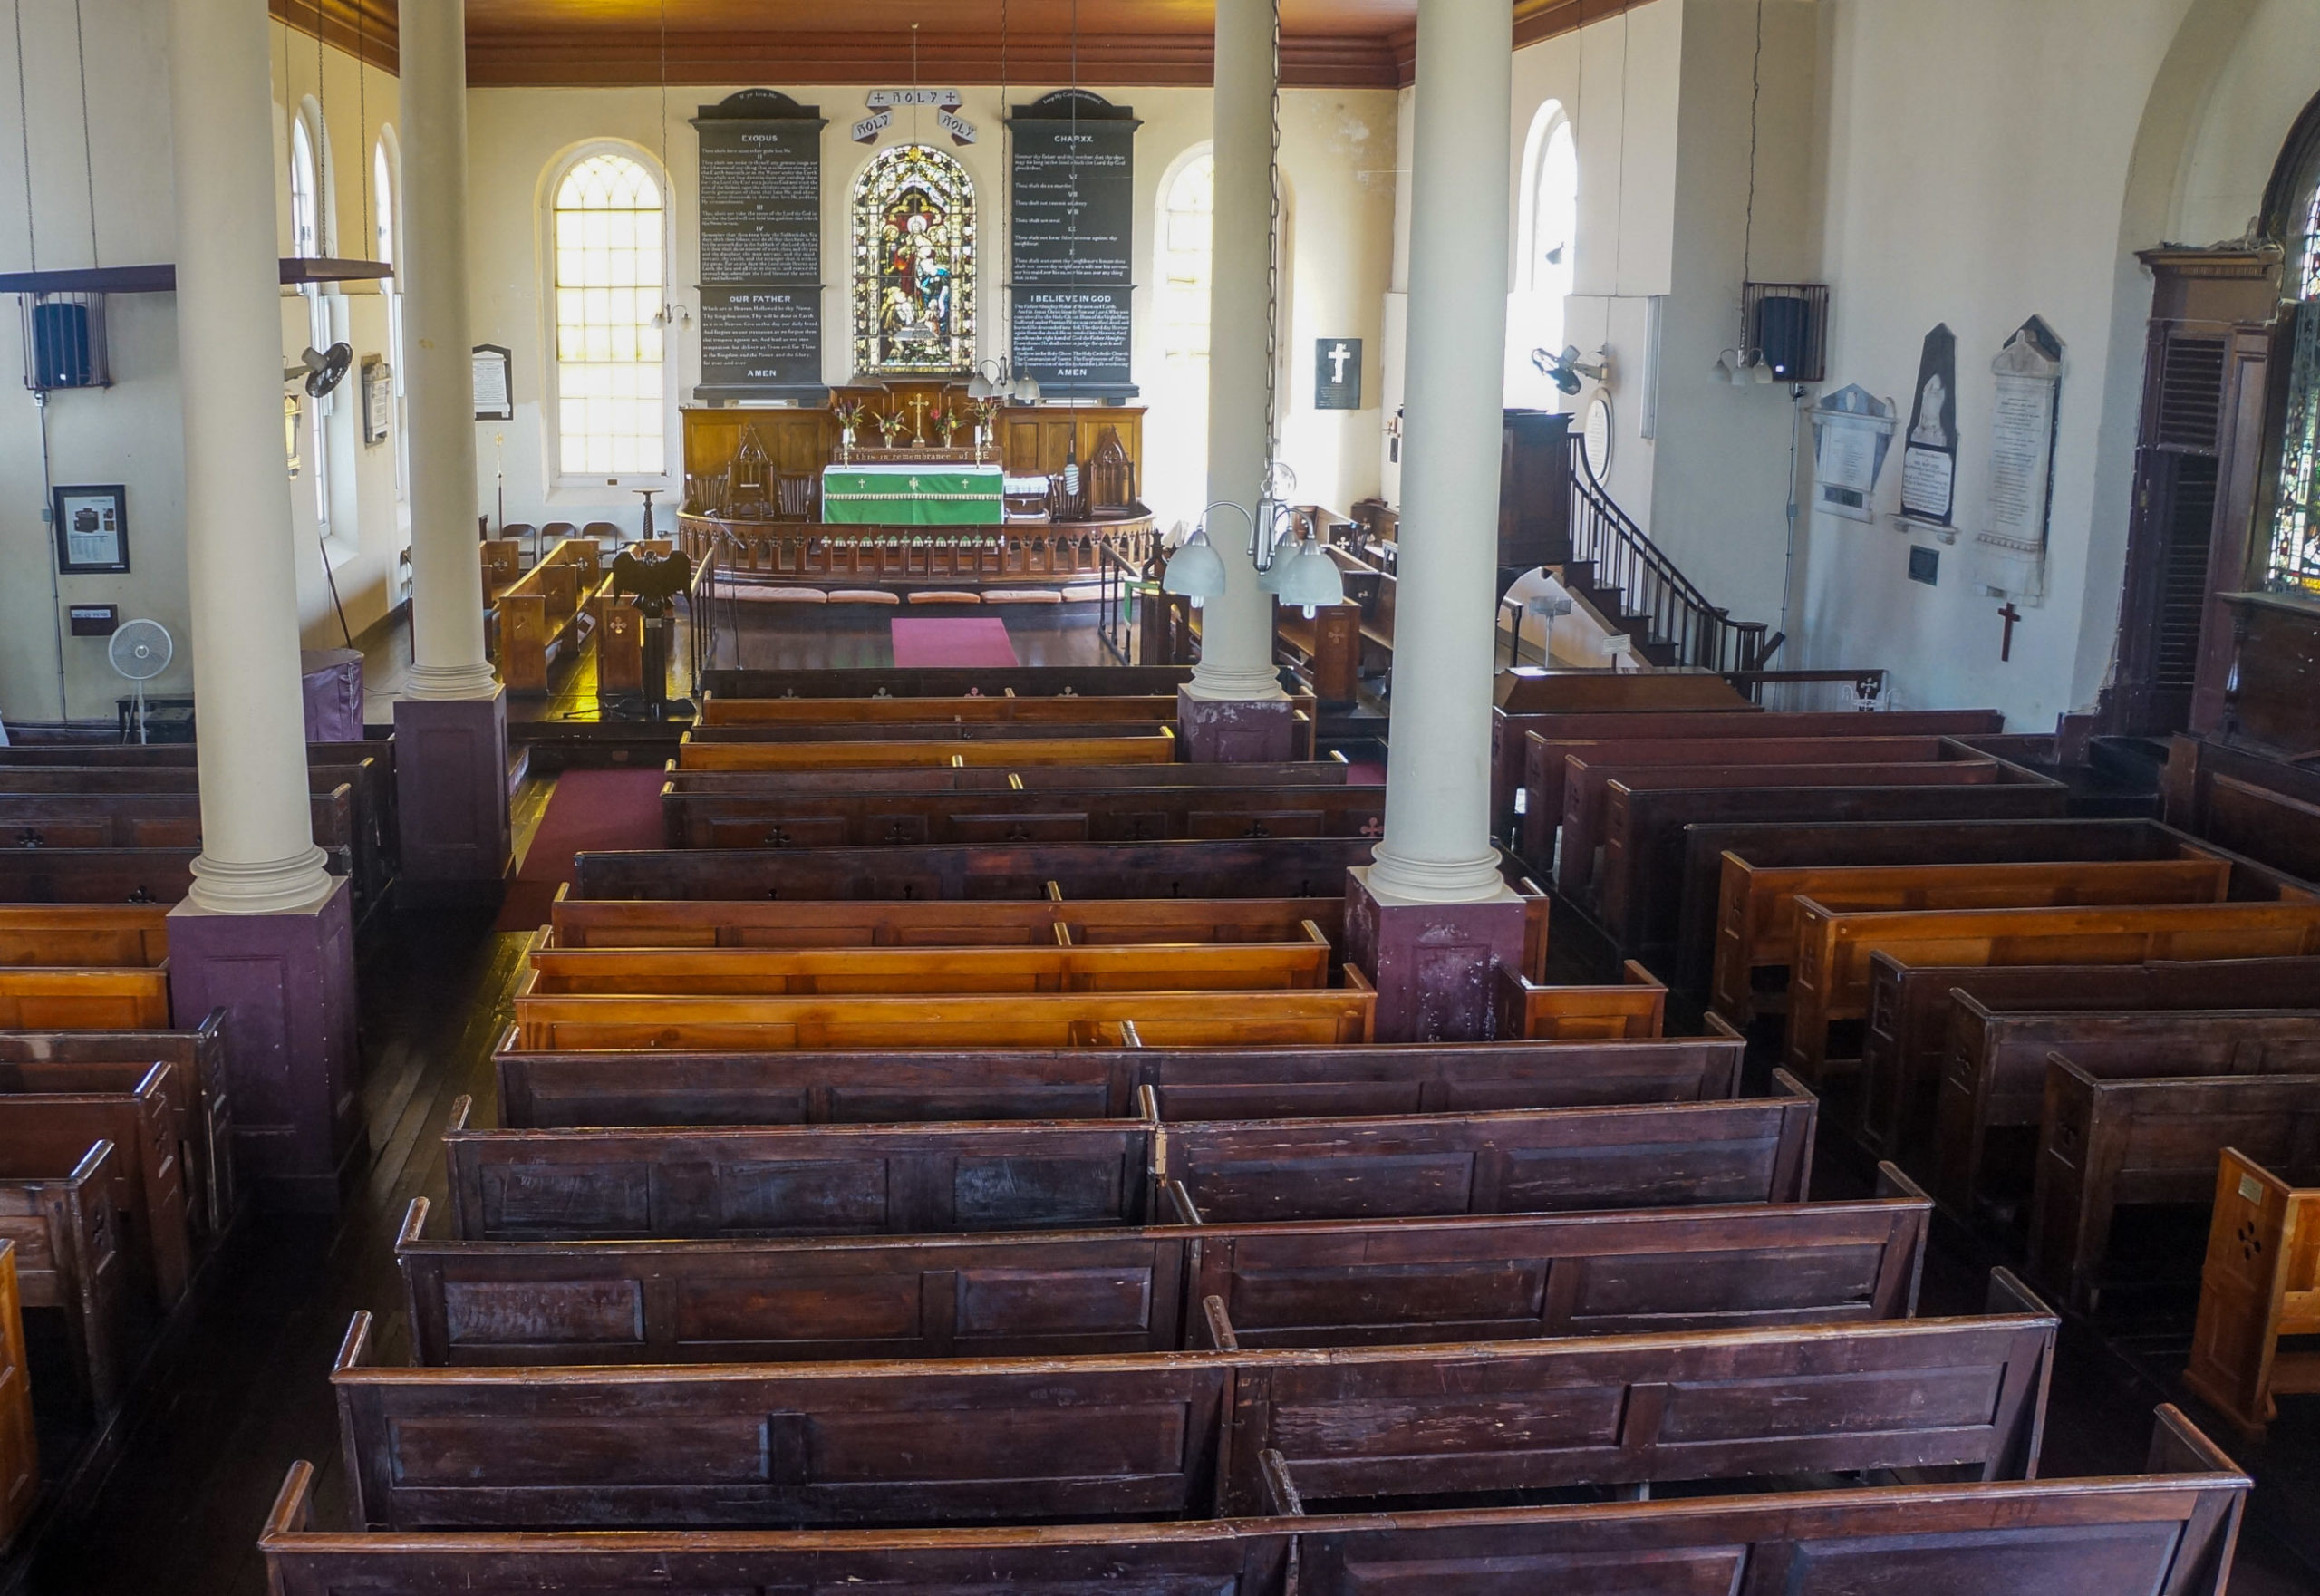 St Peters Anglican Church Interior